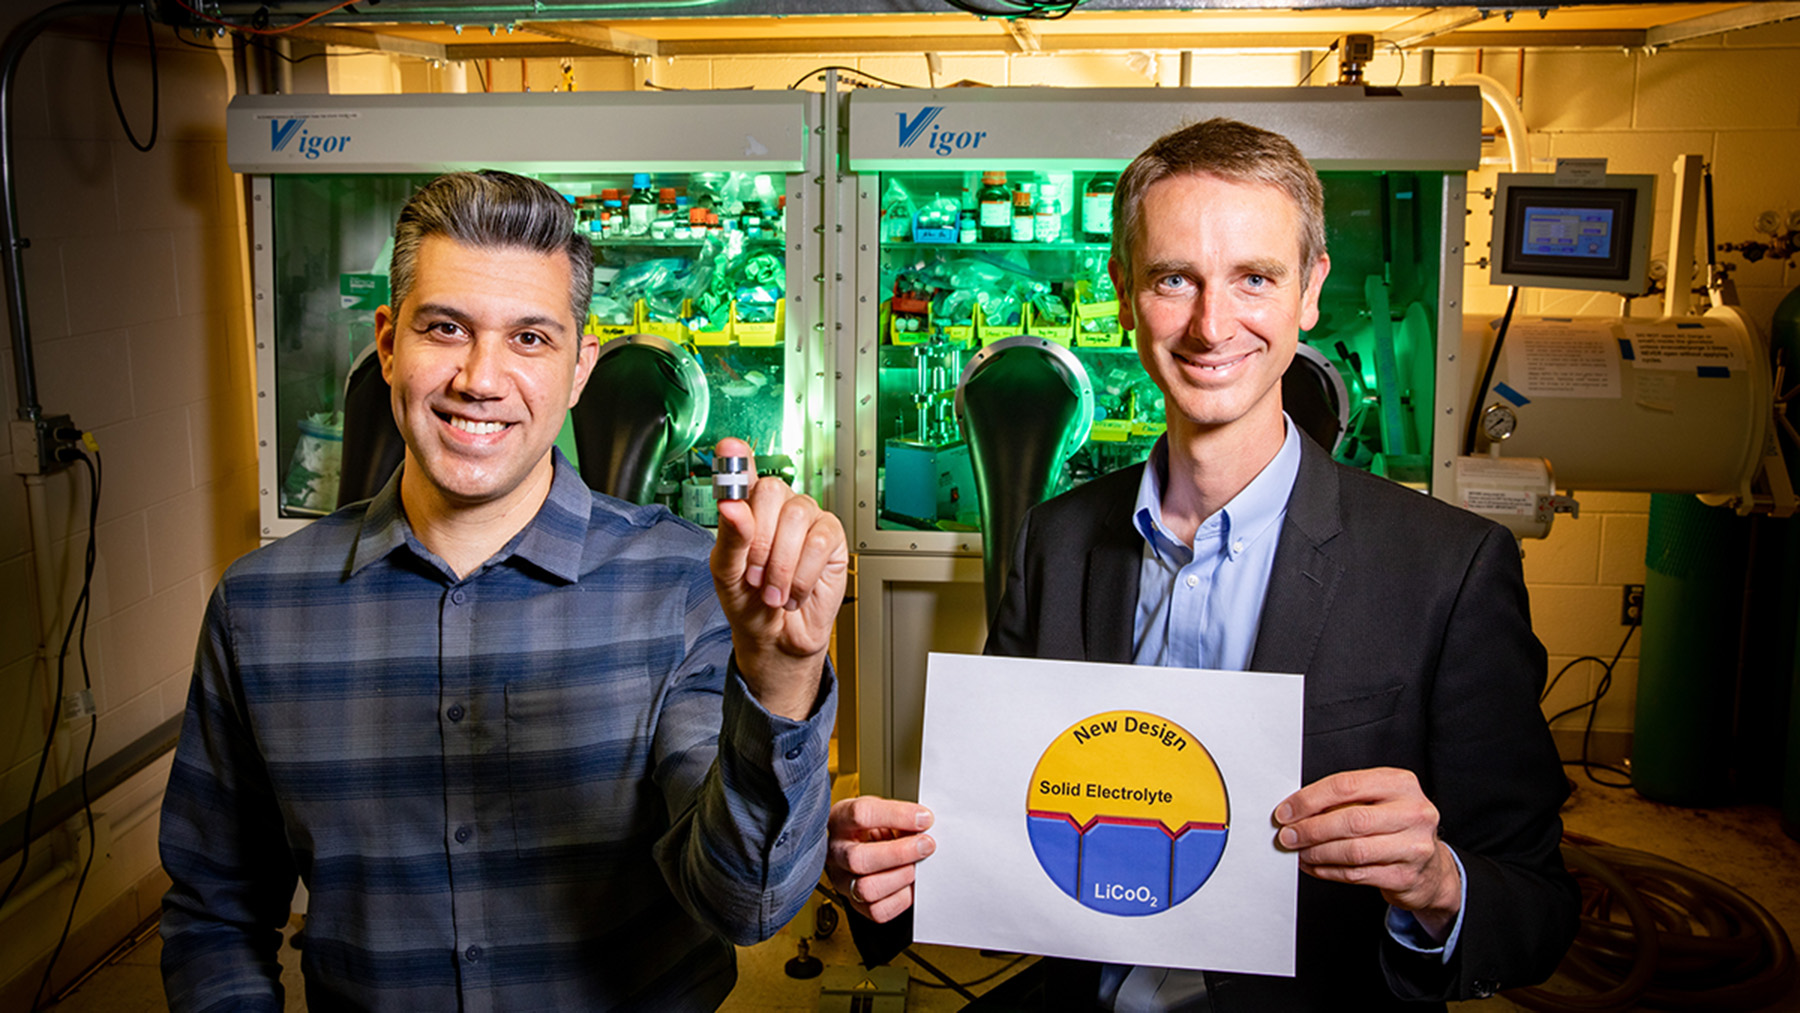 Materials science and engineering researchers Beniamin Zahiri, left, and Paul Braun led a team that developed new battery electrodes made of strategically arranged materials in an effort to drive better solid-state battery technologies. Photo by Fred Zwicky